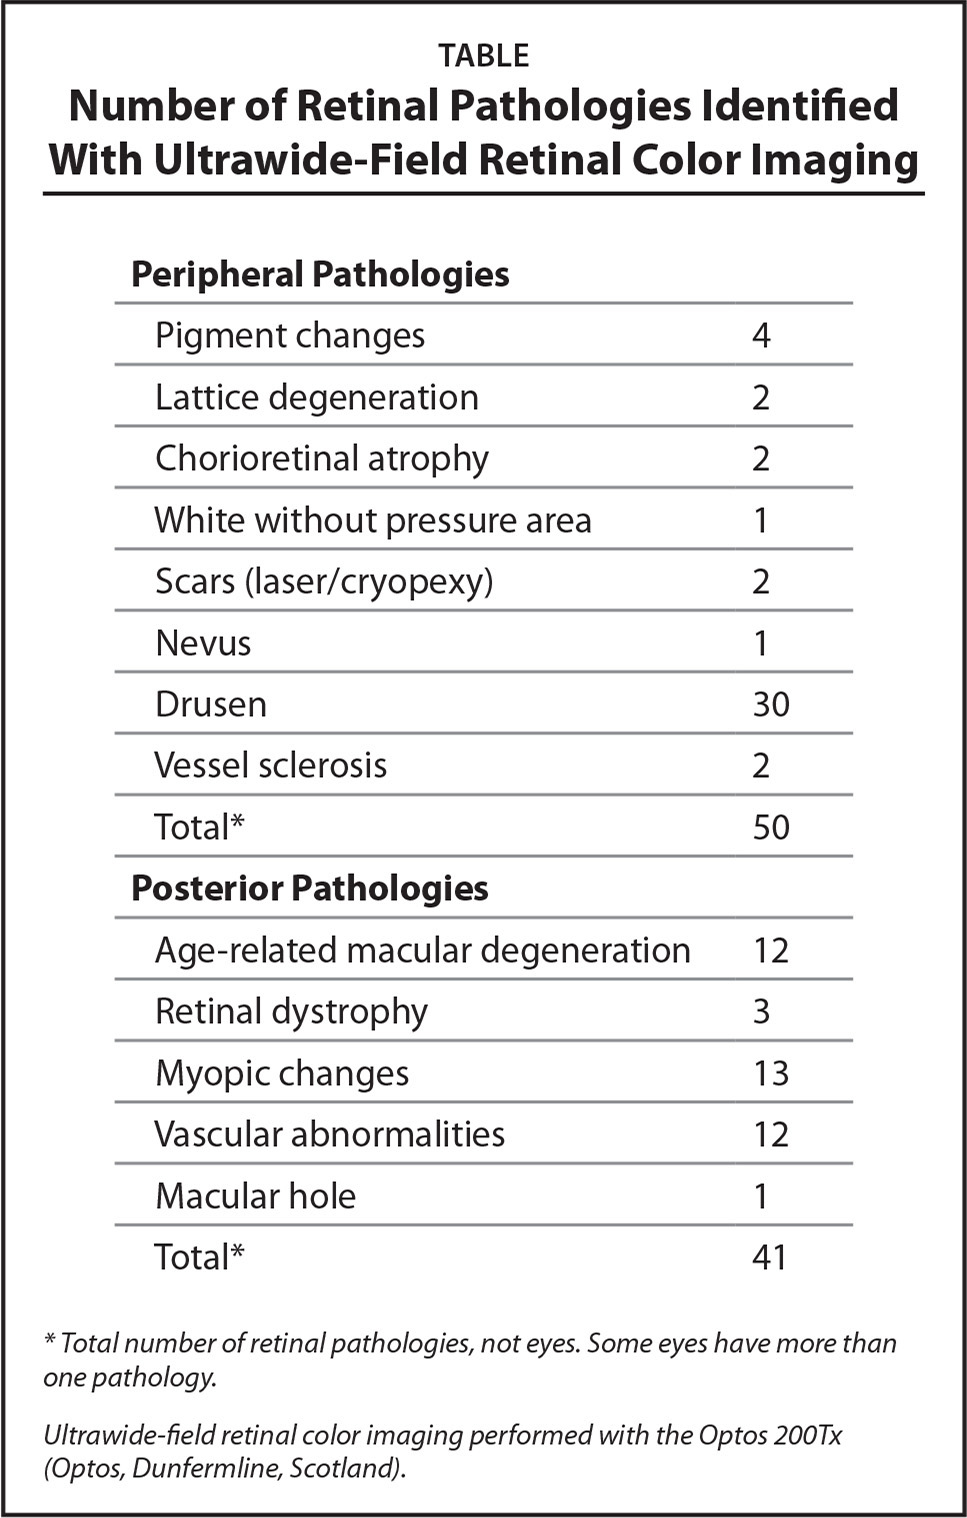 Number of Retinal Pathologies Identified With Ultrawide-Field Retinal Color Imaging